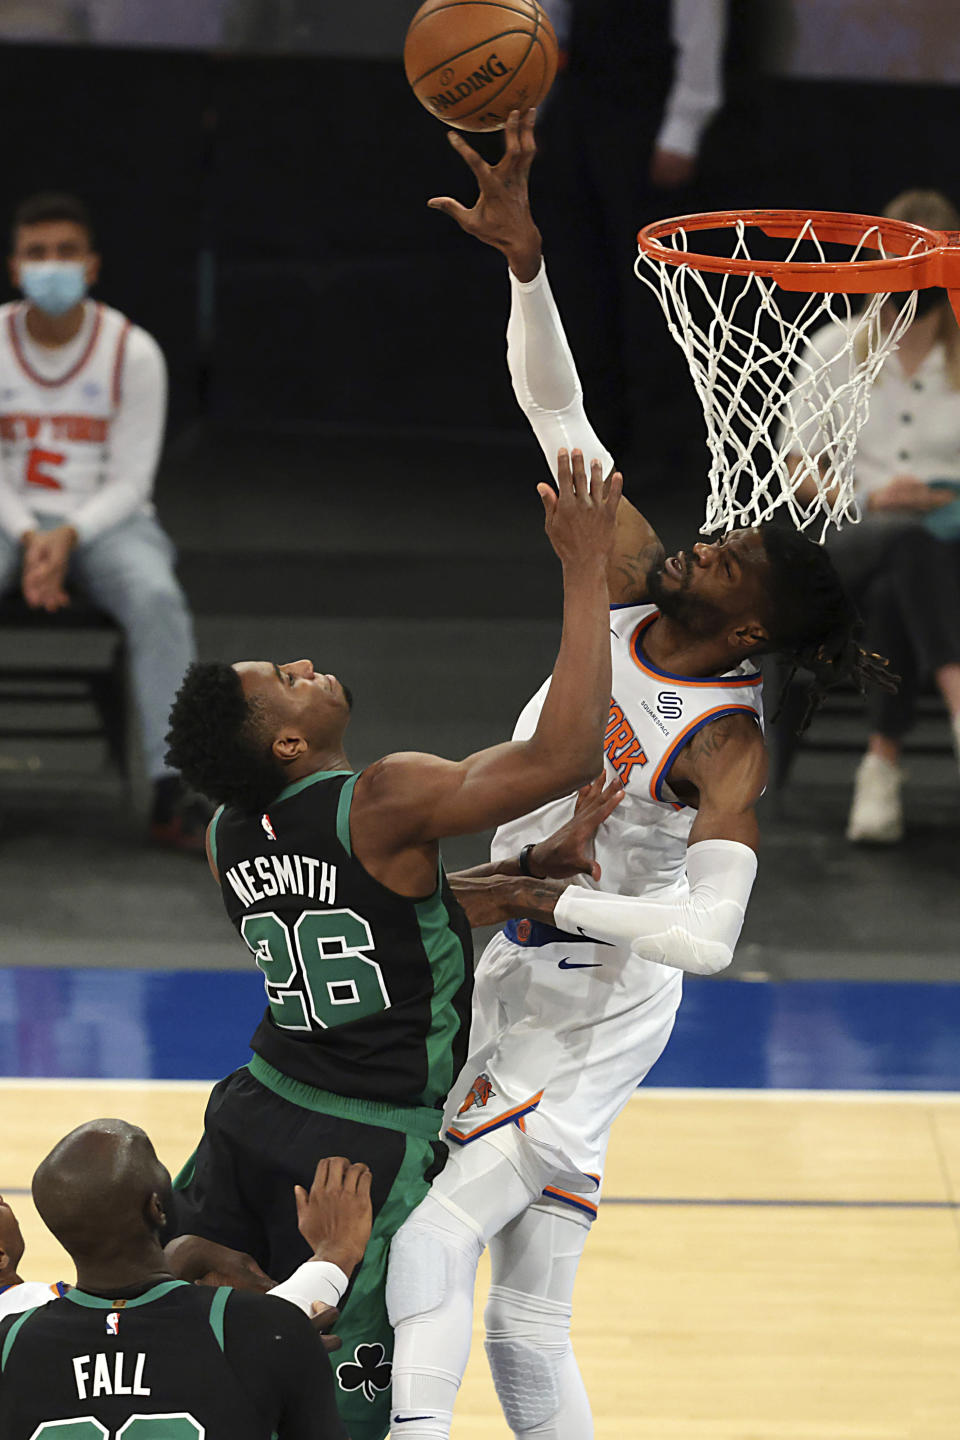 New York Knicks center Nerlens Noel (3) blocks a shot by Boston Celtics forward Aaron Nesmith (26) during the first half of an NBA basketball game in New York, Sunday, May 16, 2021. (Vincent Carchietta/Pool Photo via AP)